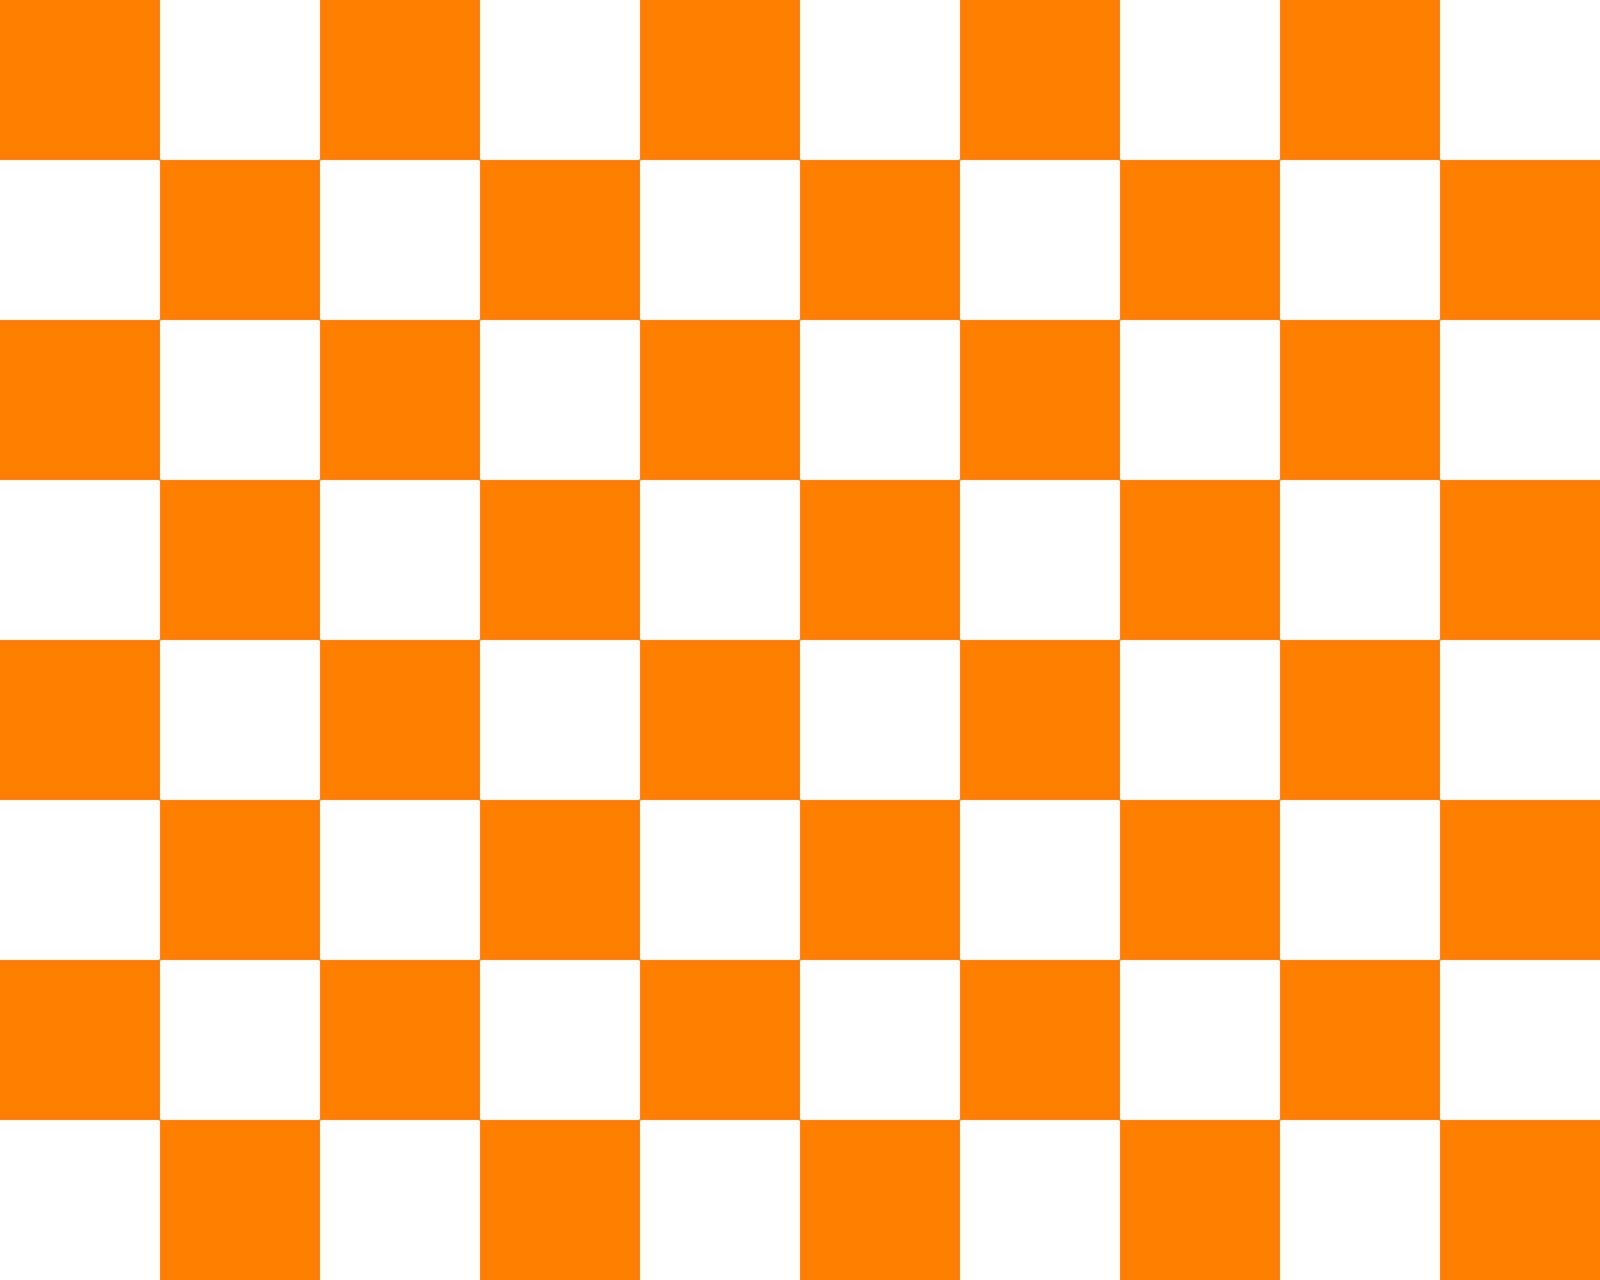 Orange And White Checkerboard Wallpaper Wallpapersafari